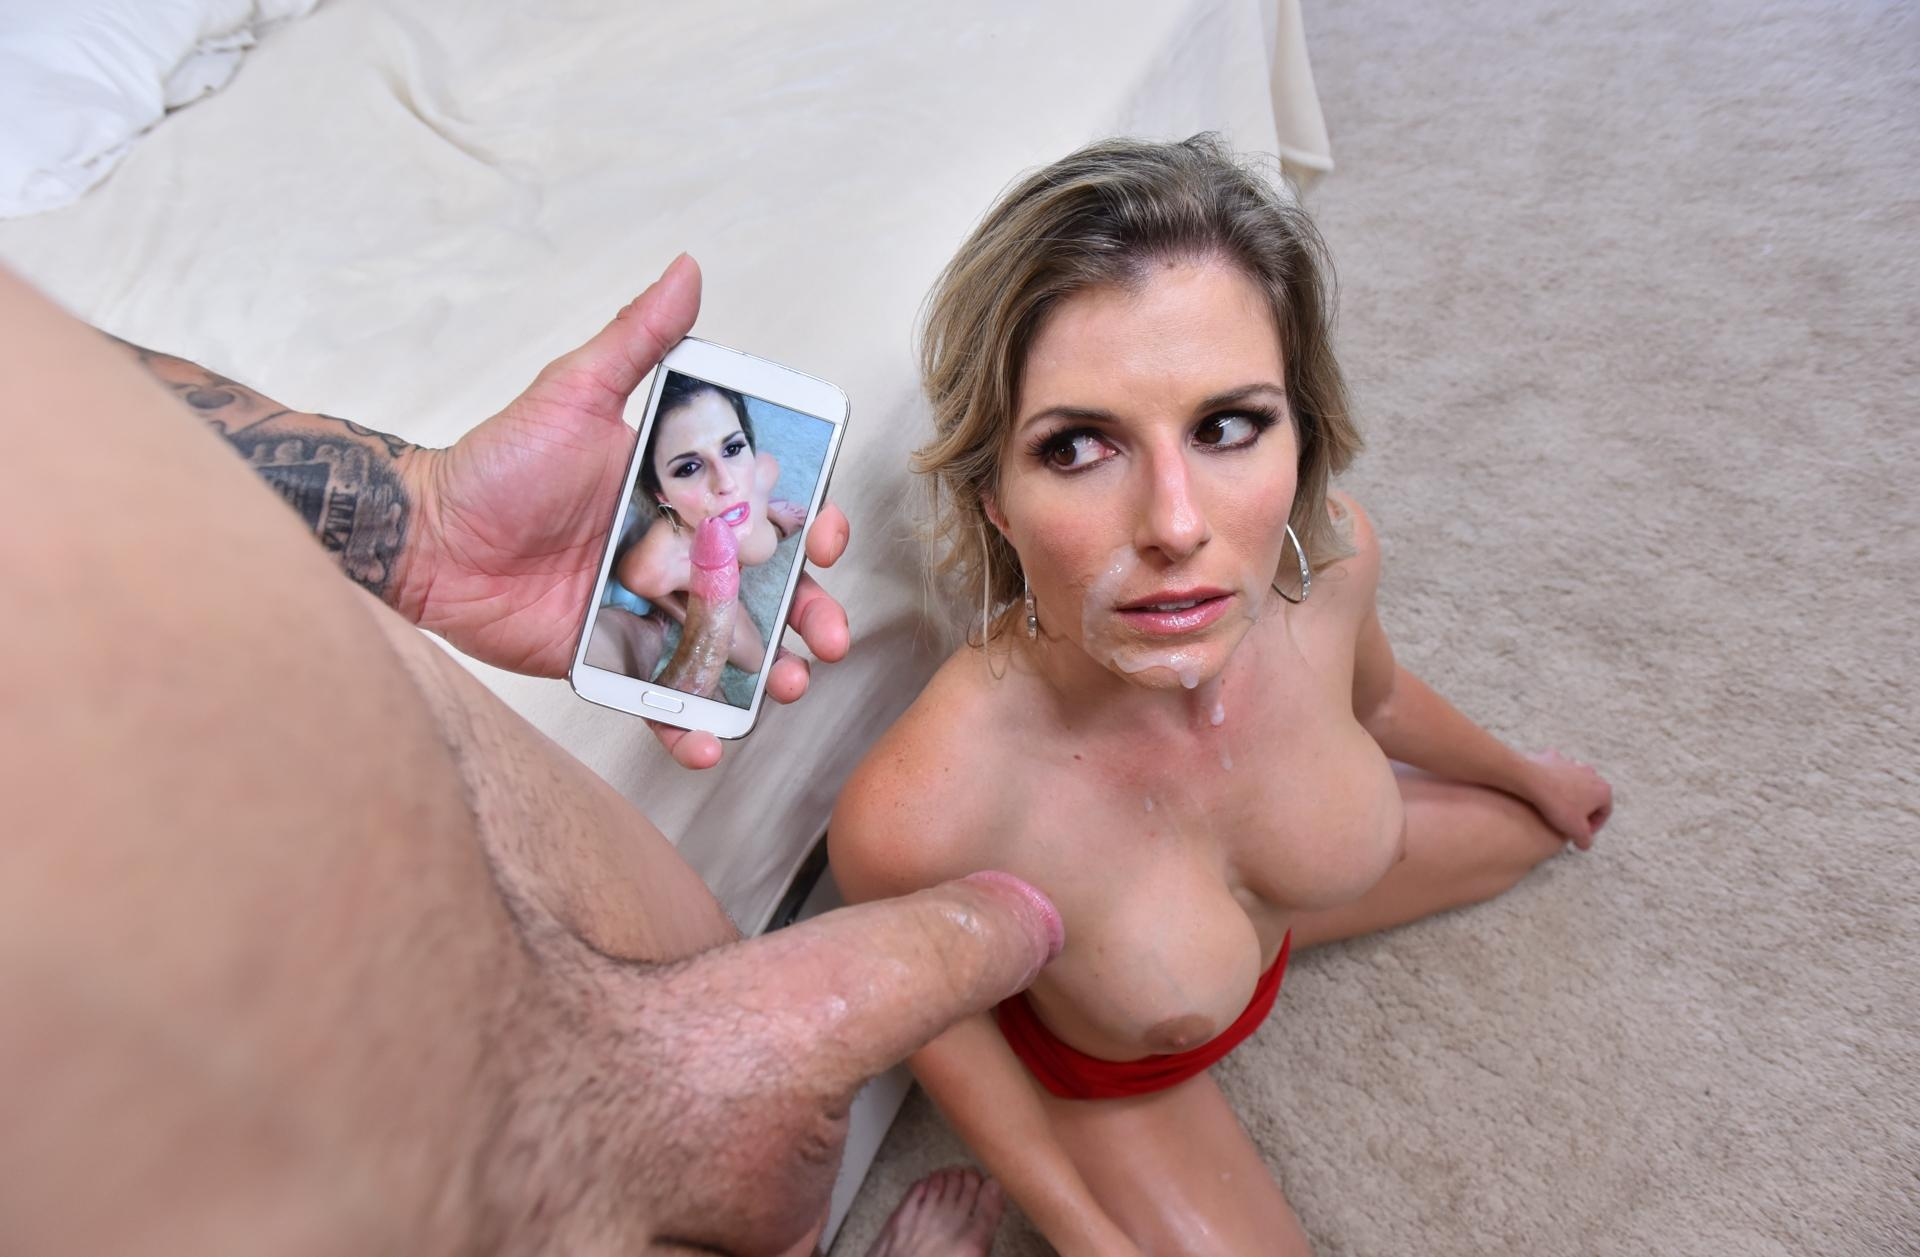 missbehaving conservative secretary Cory Chase gets rectum and mindfucked picture 2